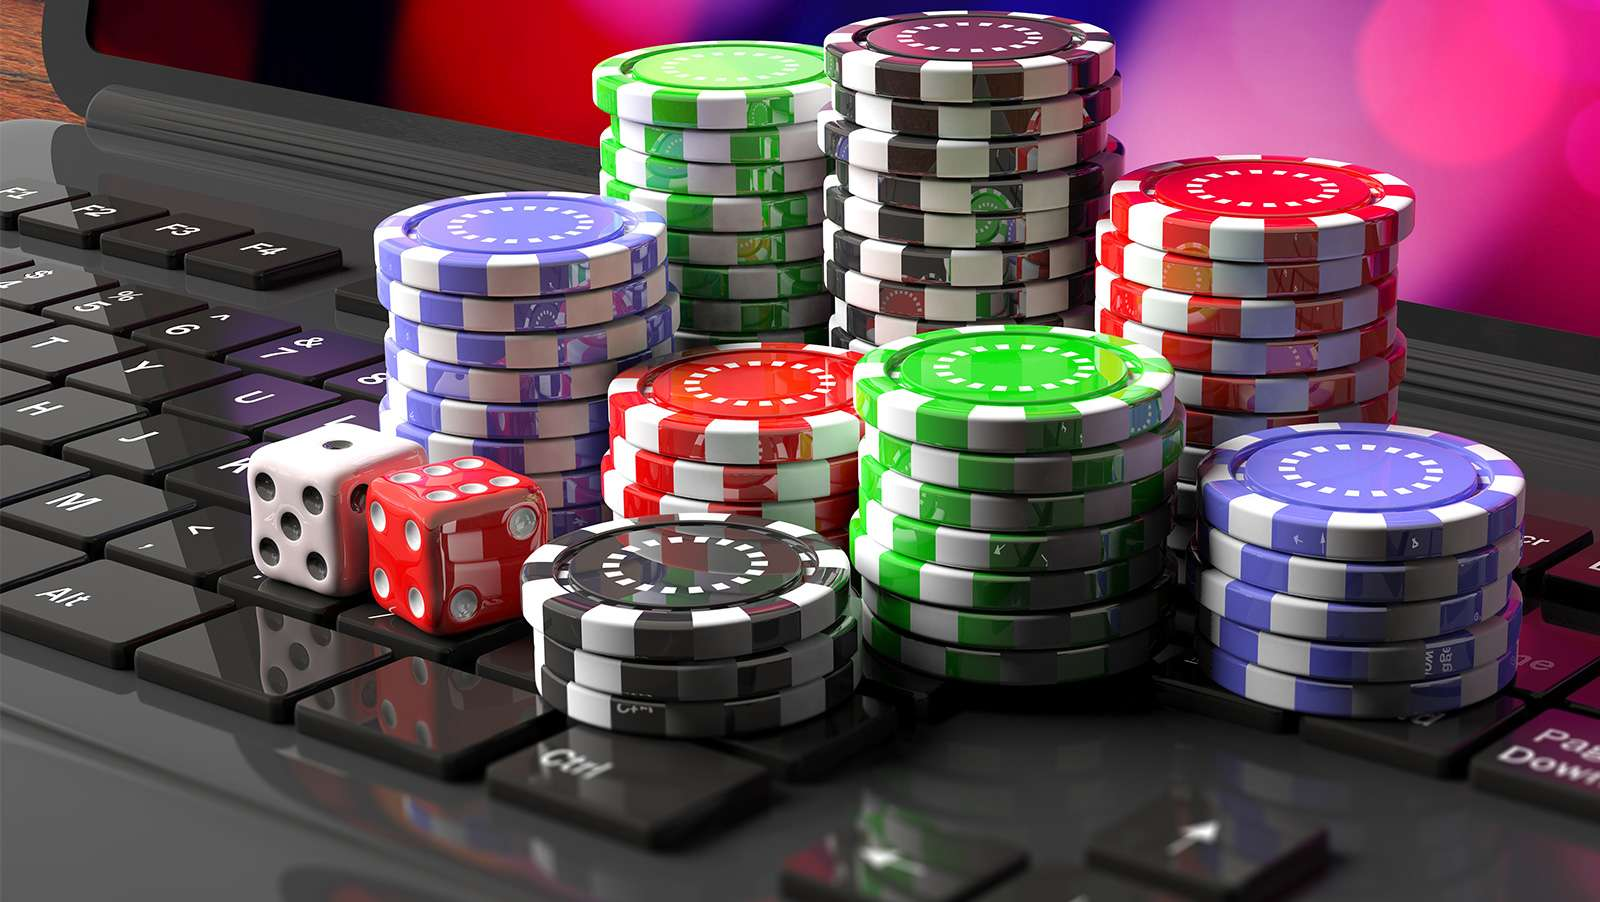 Factors that influence selecting an online poker website